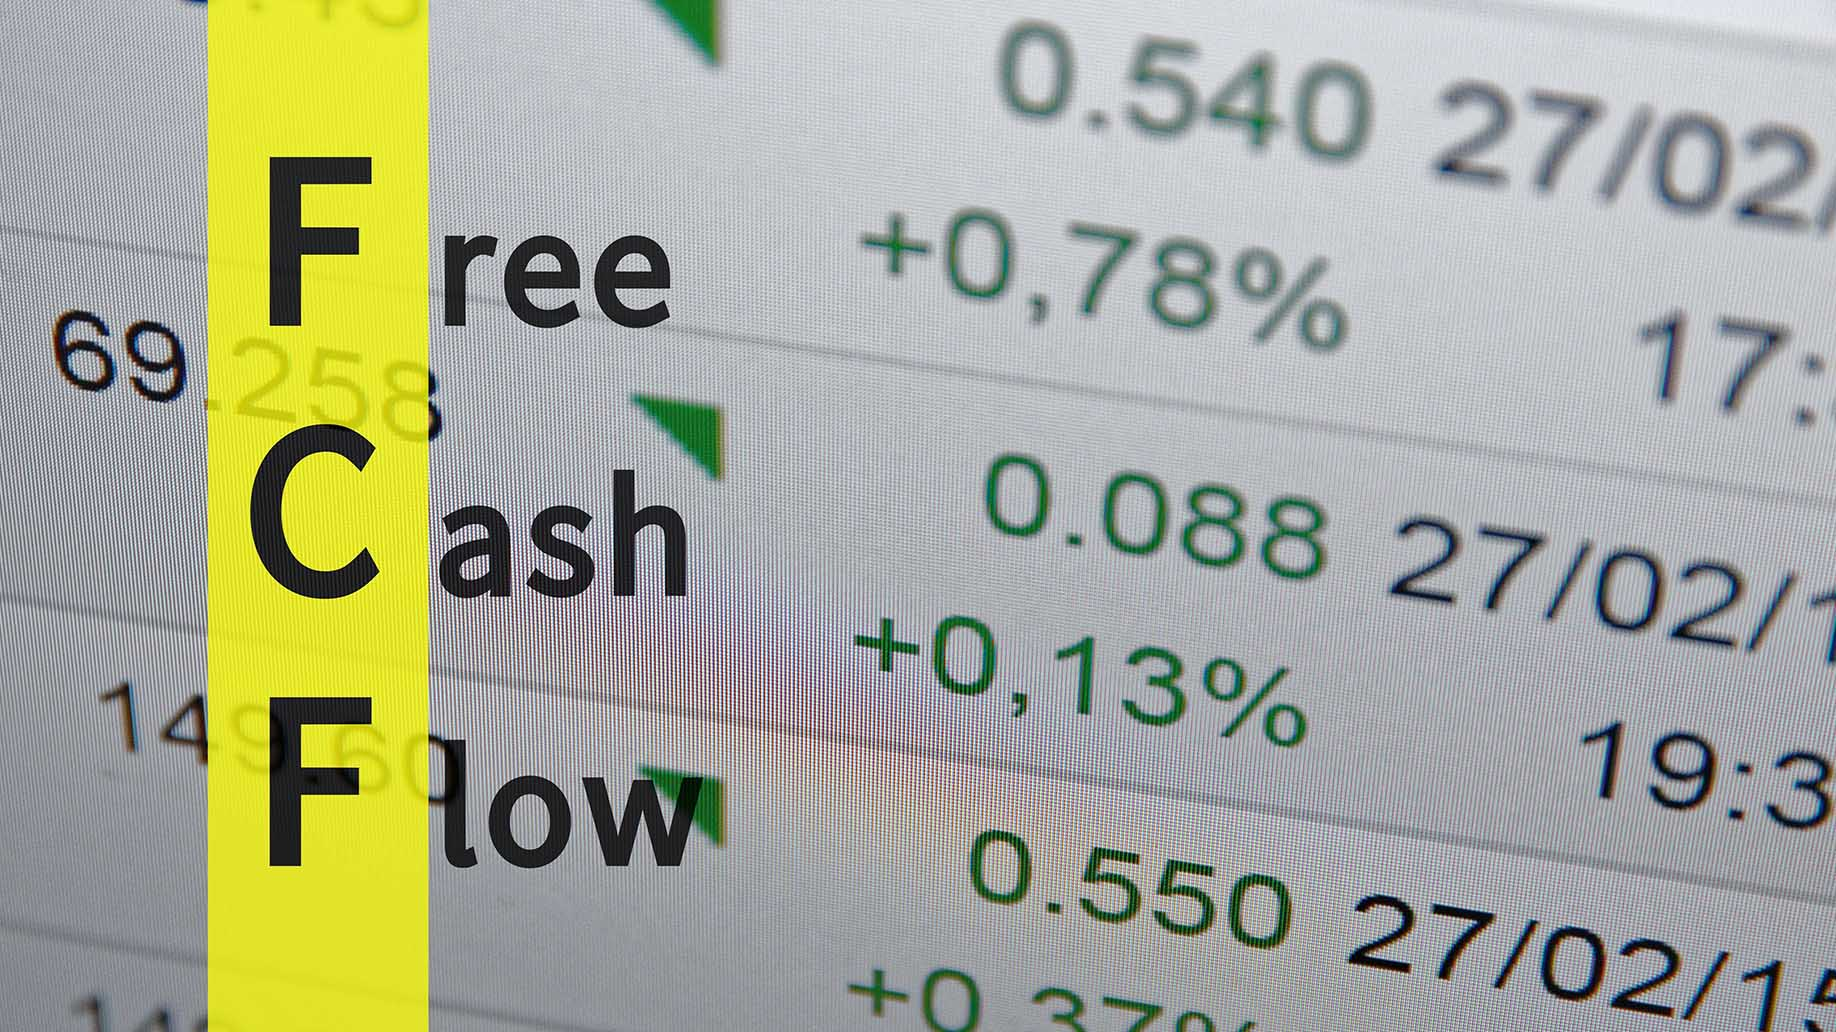 fcf as free cash flow document